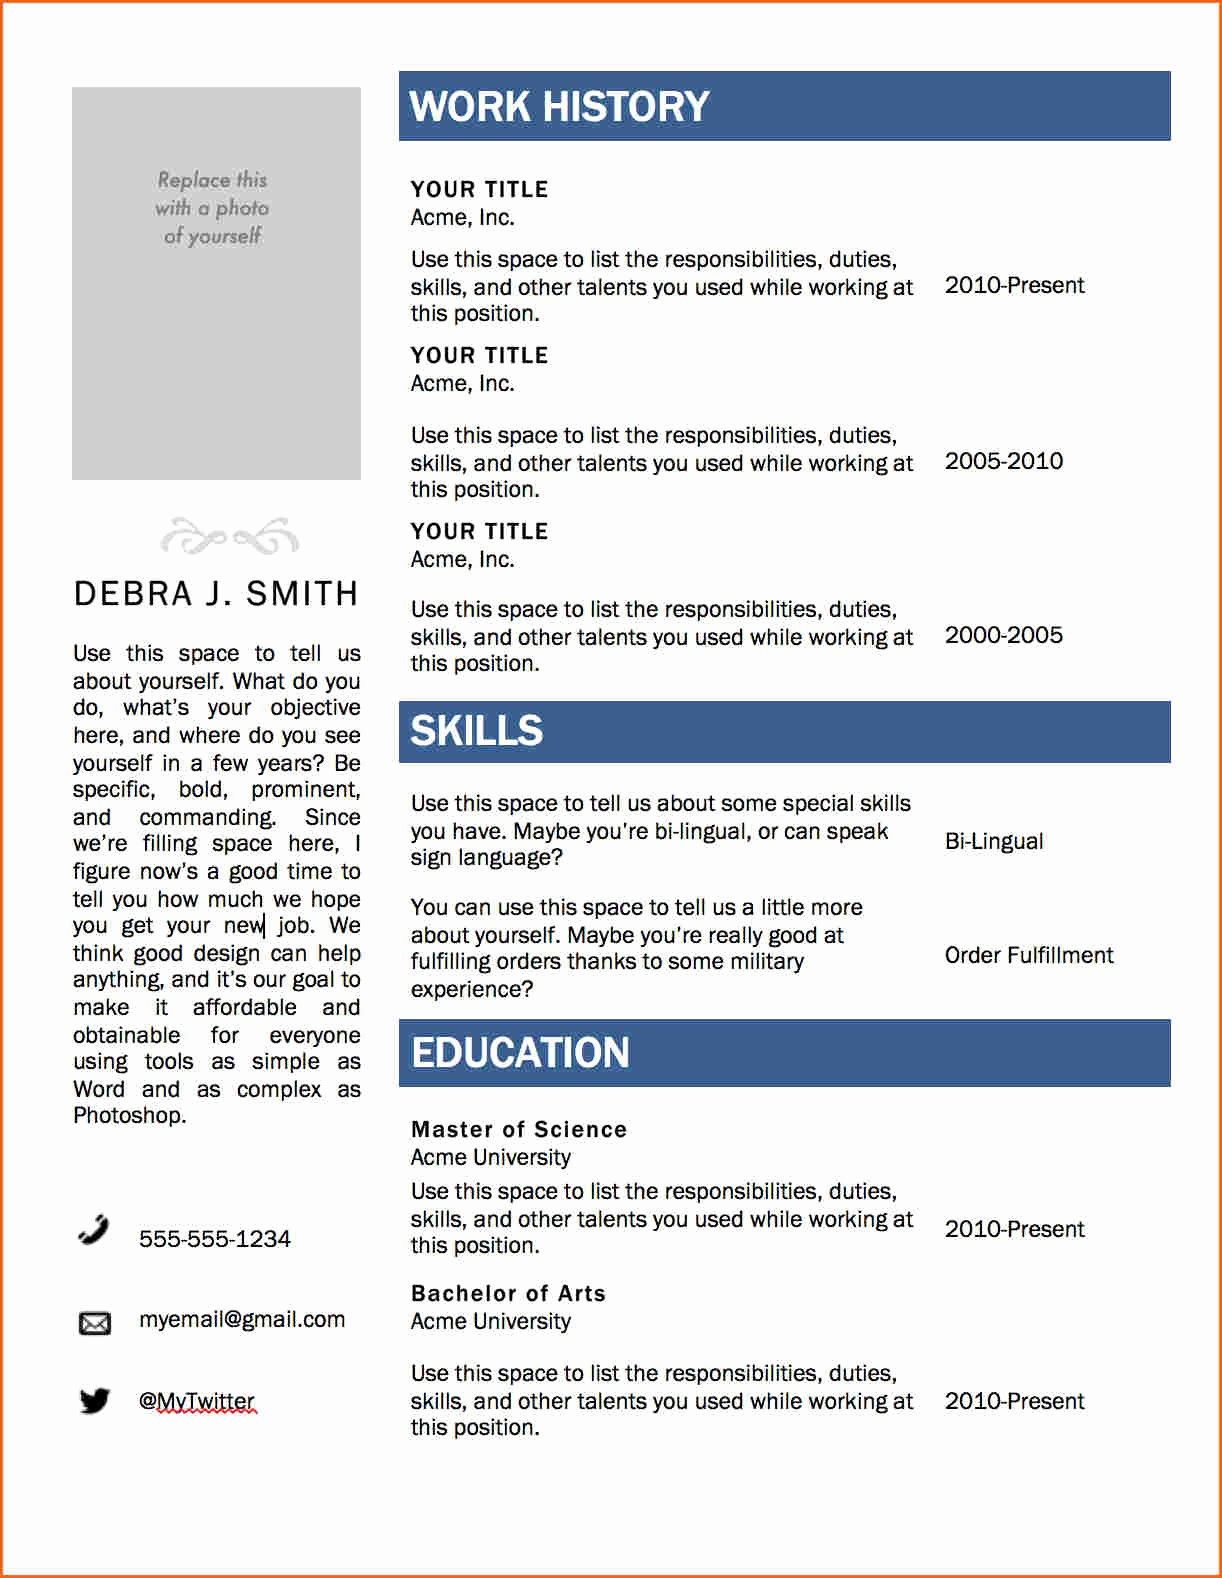 Resume Template Ms Word 2007 Elegant 6 Free Resume Templates Microsoft Word 2007 Bud